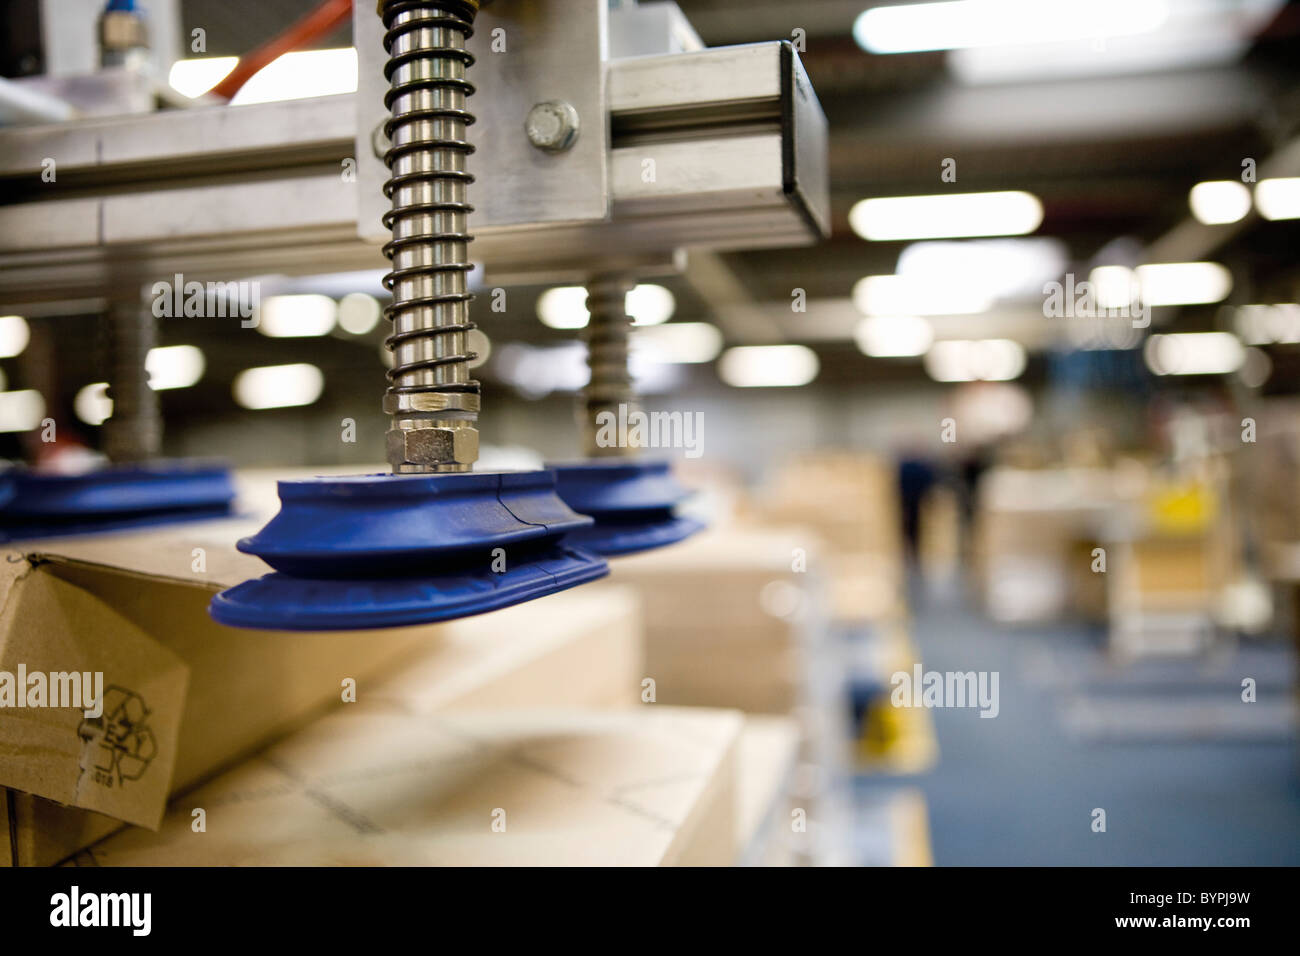 Pneumatic handling robot with technical springs and suction cups designed to lift cardboard boxes in warehouse Stock Photo